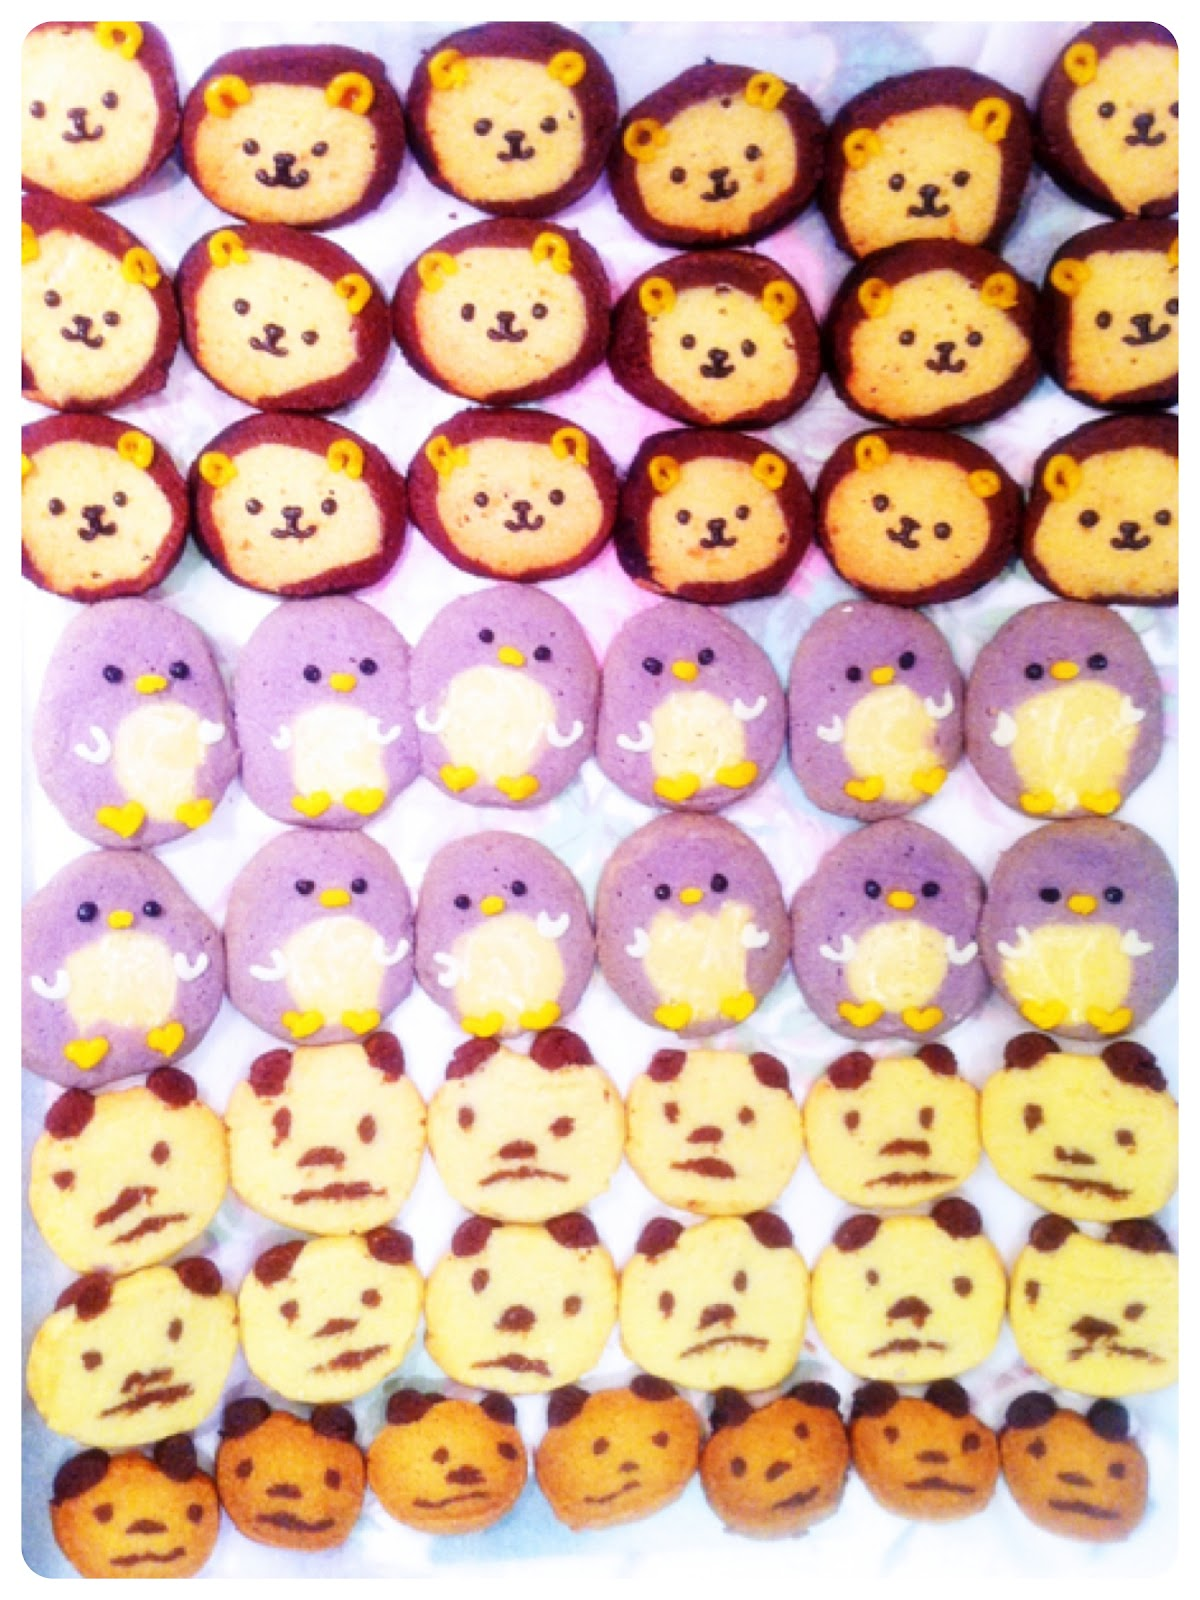 Penguin, Lion and Panda Icebox Cookies Cherie Kelly Cake London